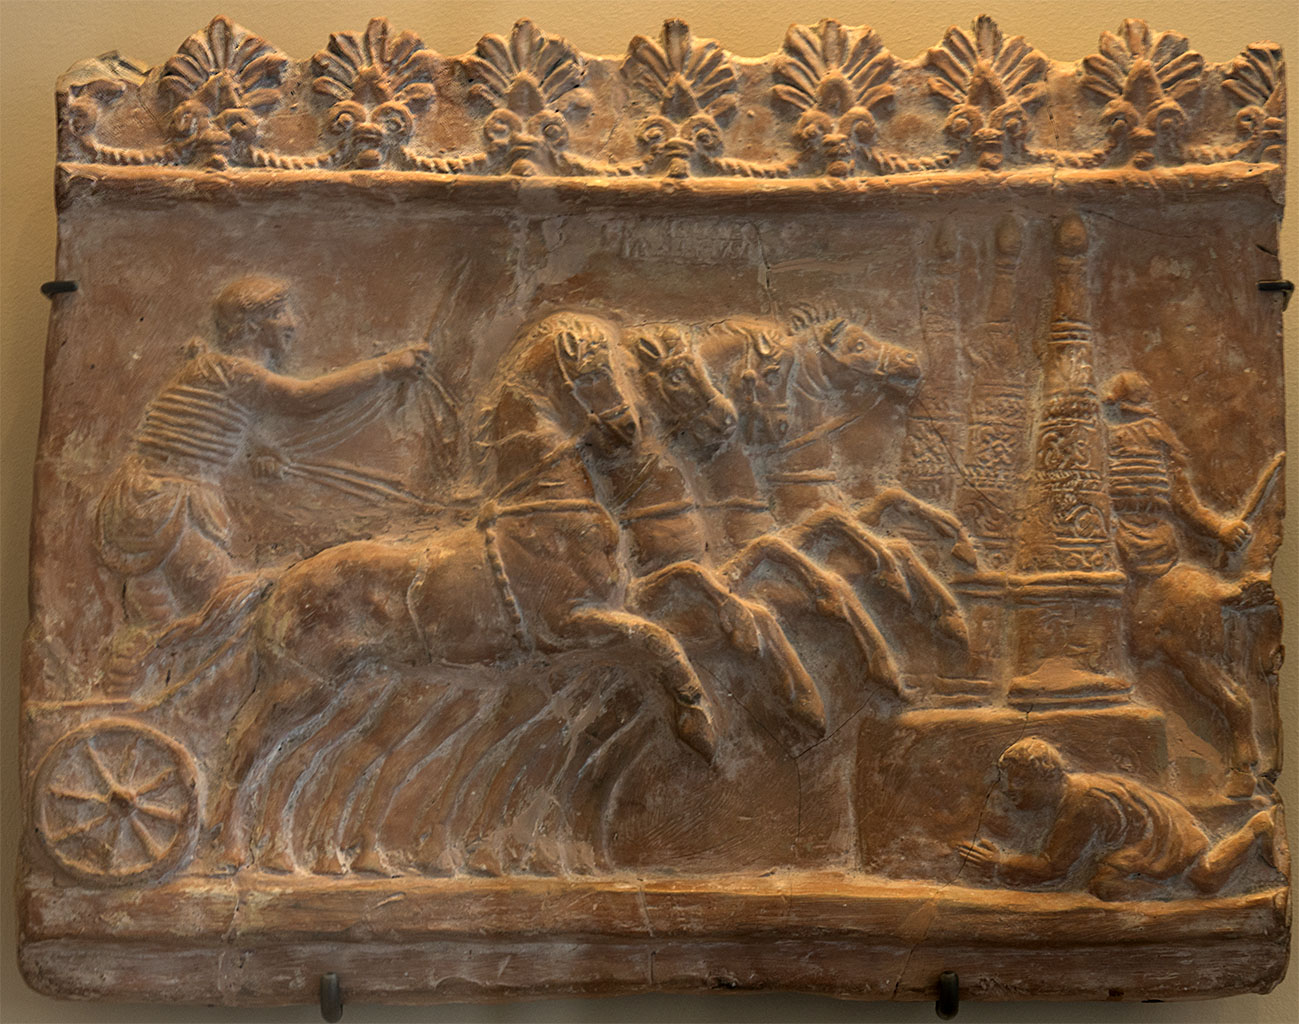 Campana tile with a relief scene of chariot race. Terracotta. 1st century CE. Inv. No. S 877. Paris, Louvre Museum